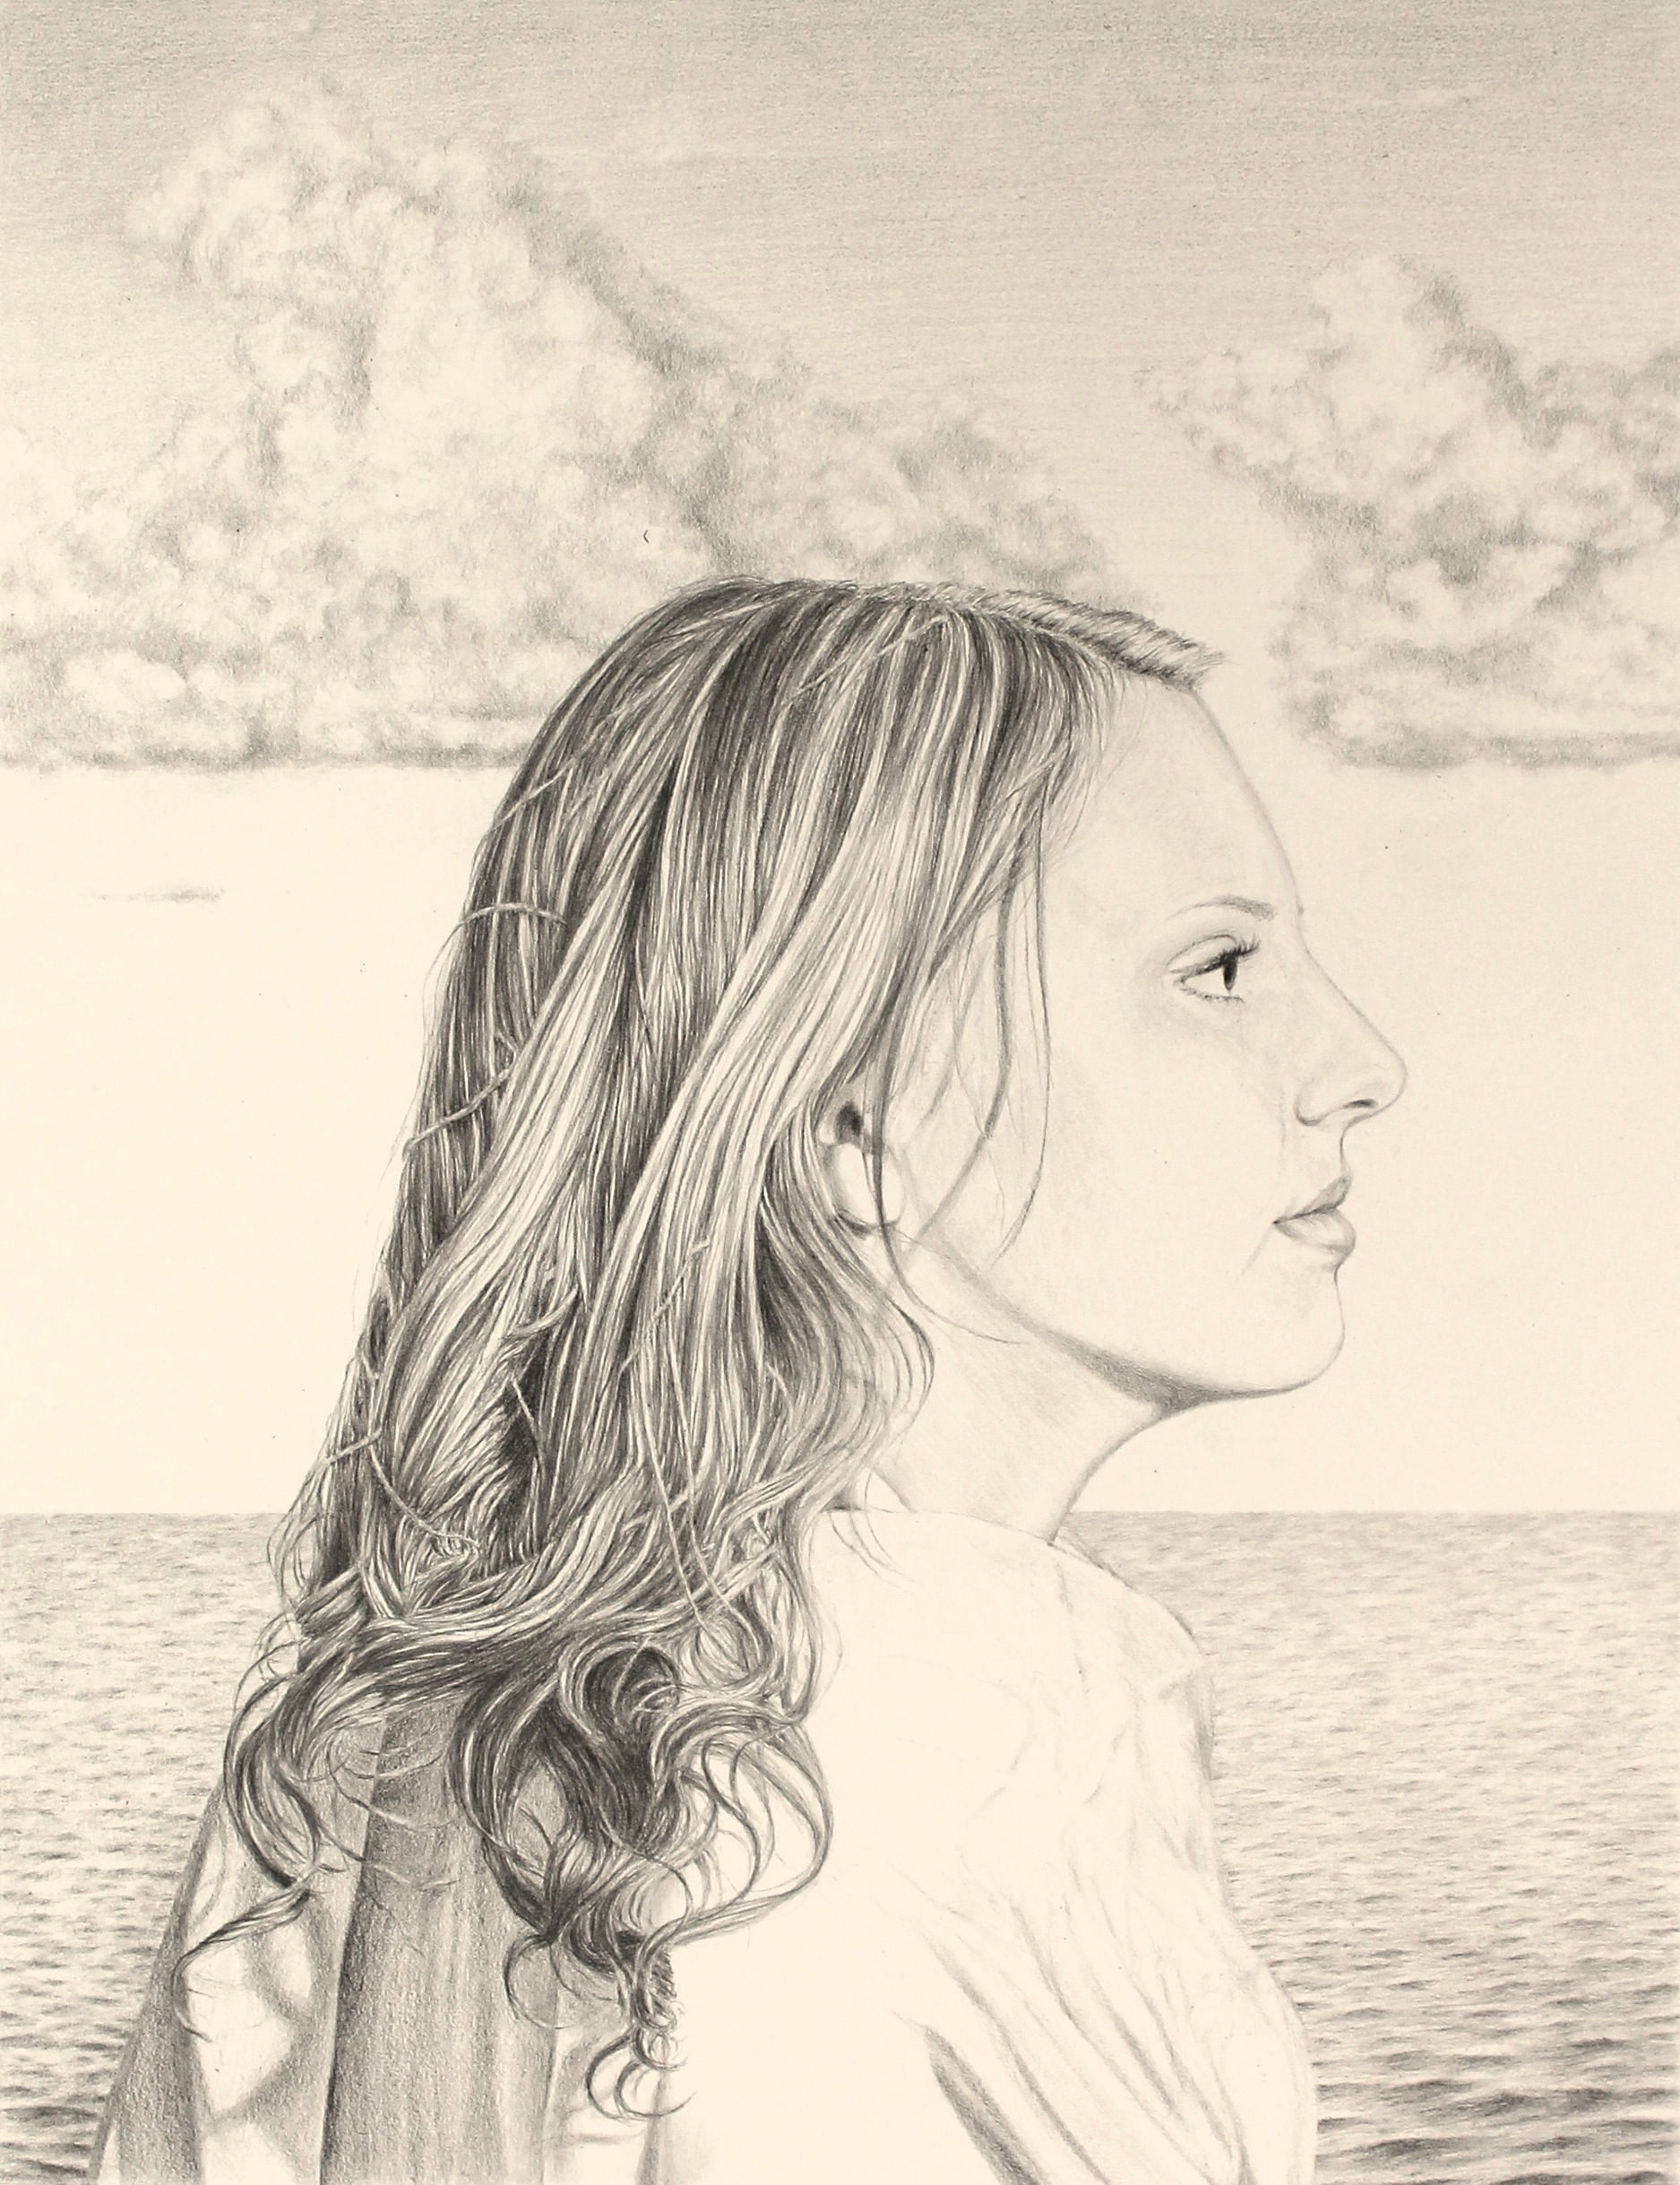 She Could See between the Unsettled Sky and Shifting Sea